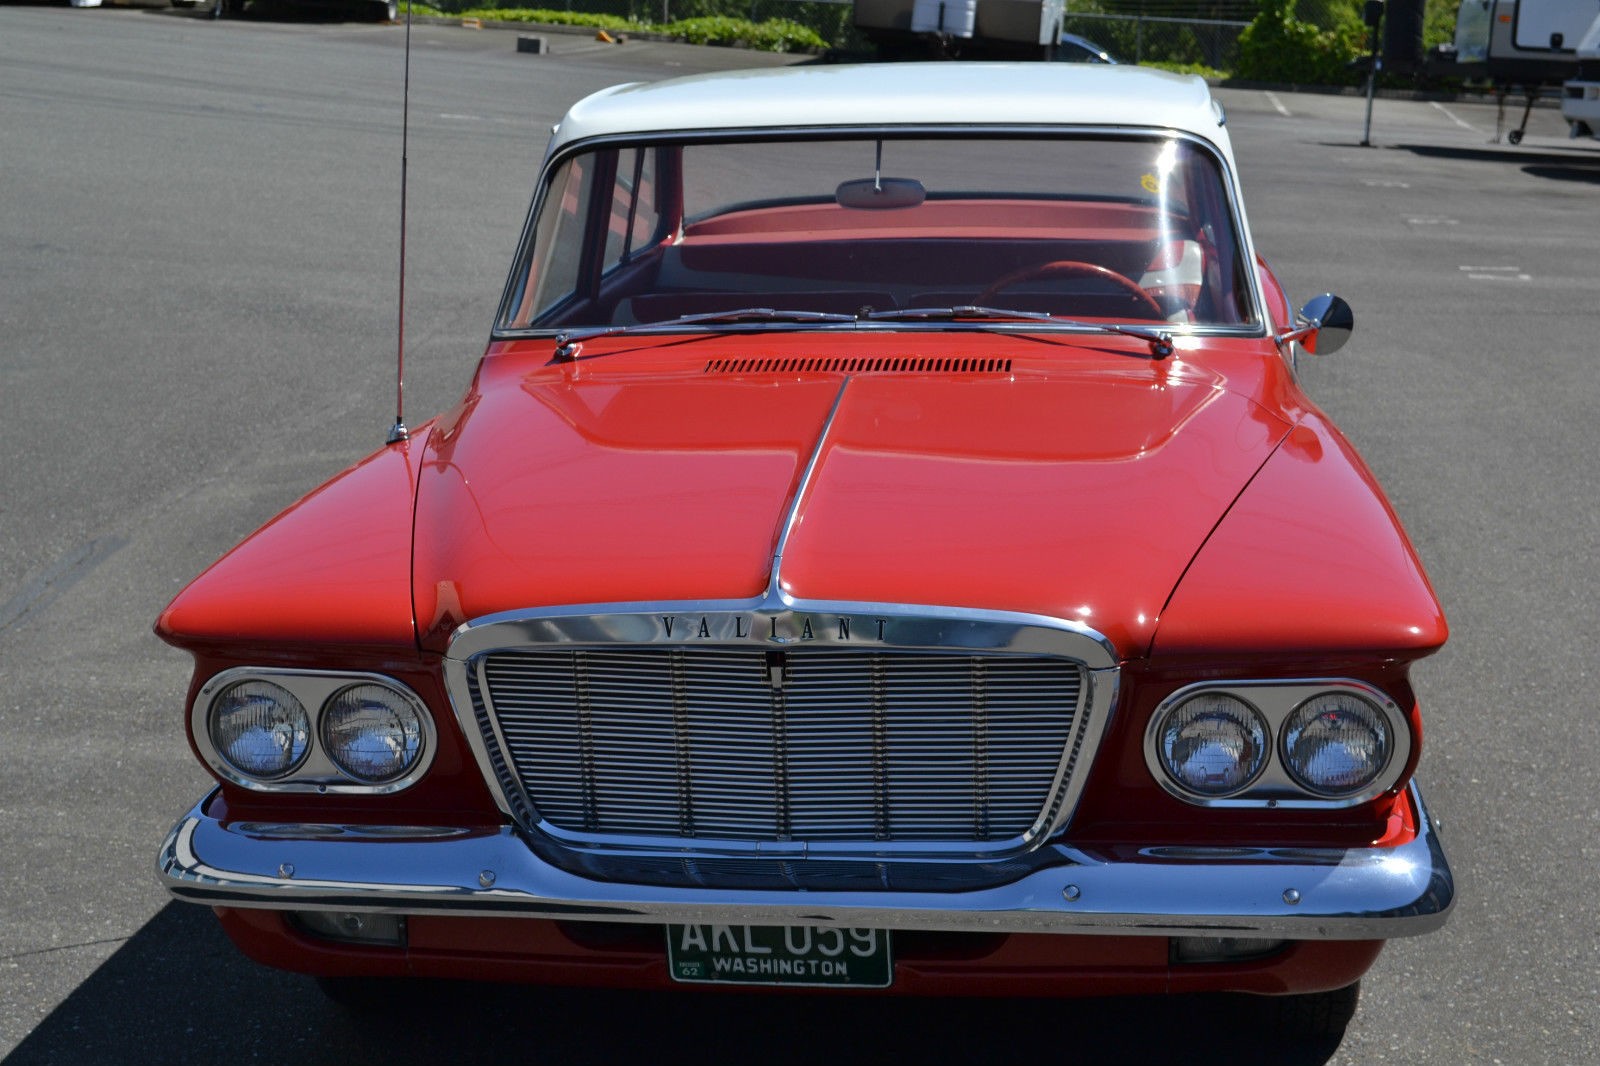 Stunning 1962 Plymouth Valiant Brings Back Memories